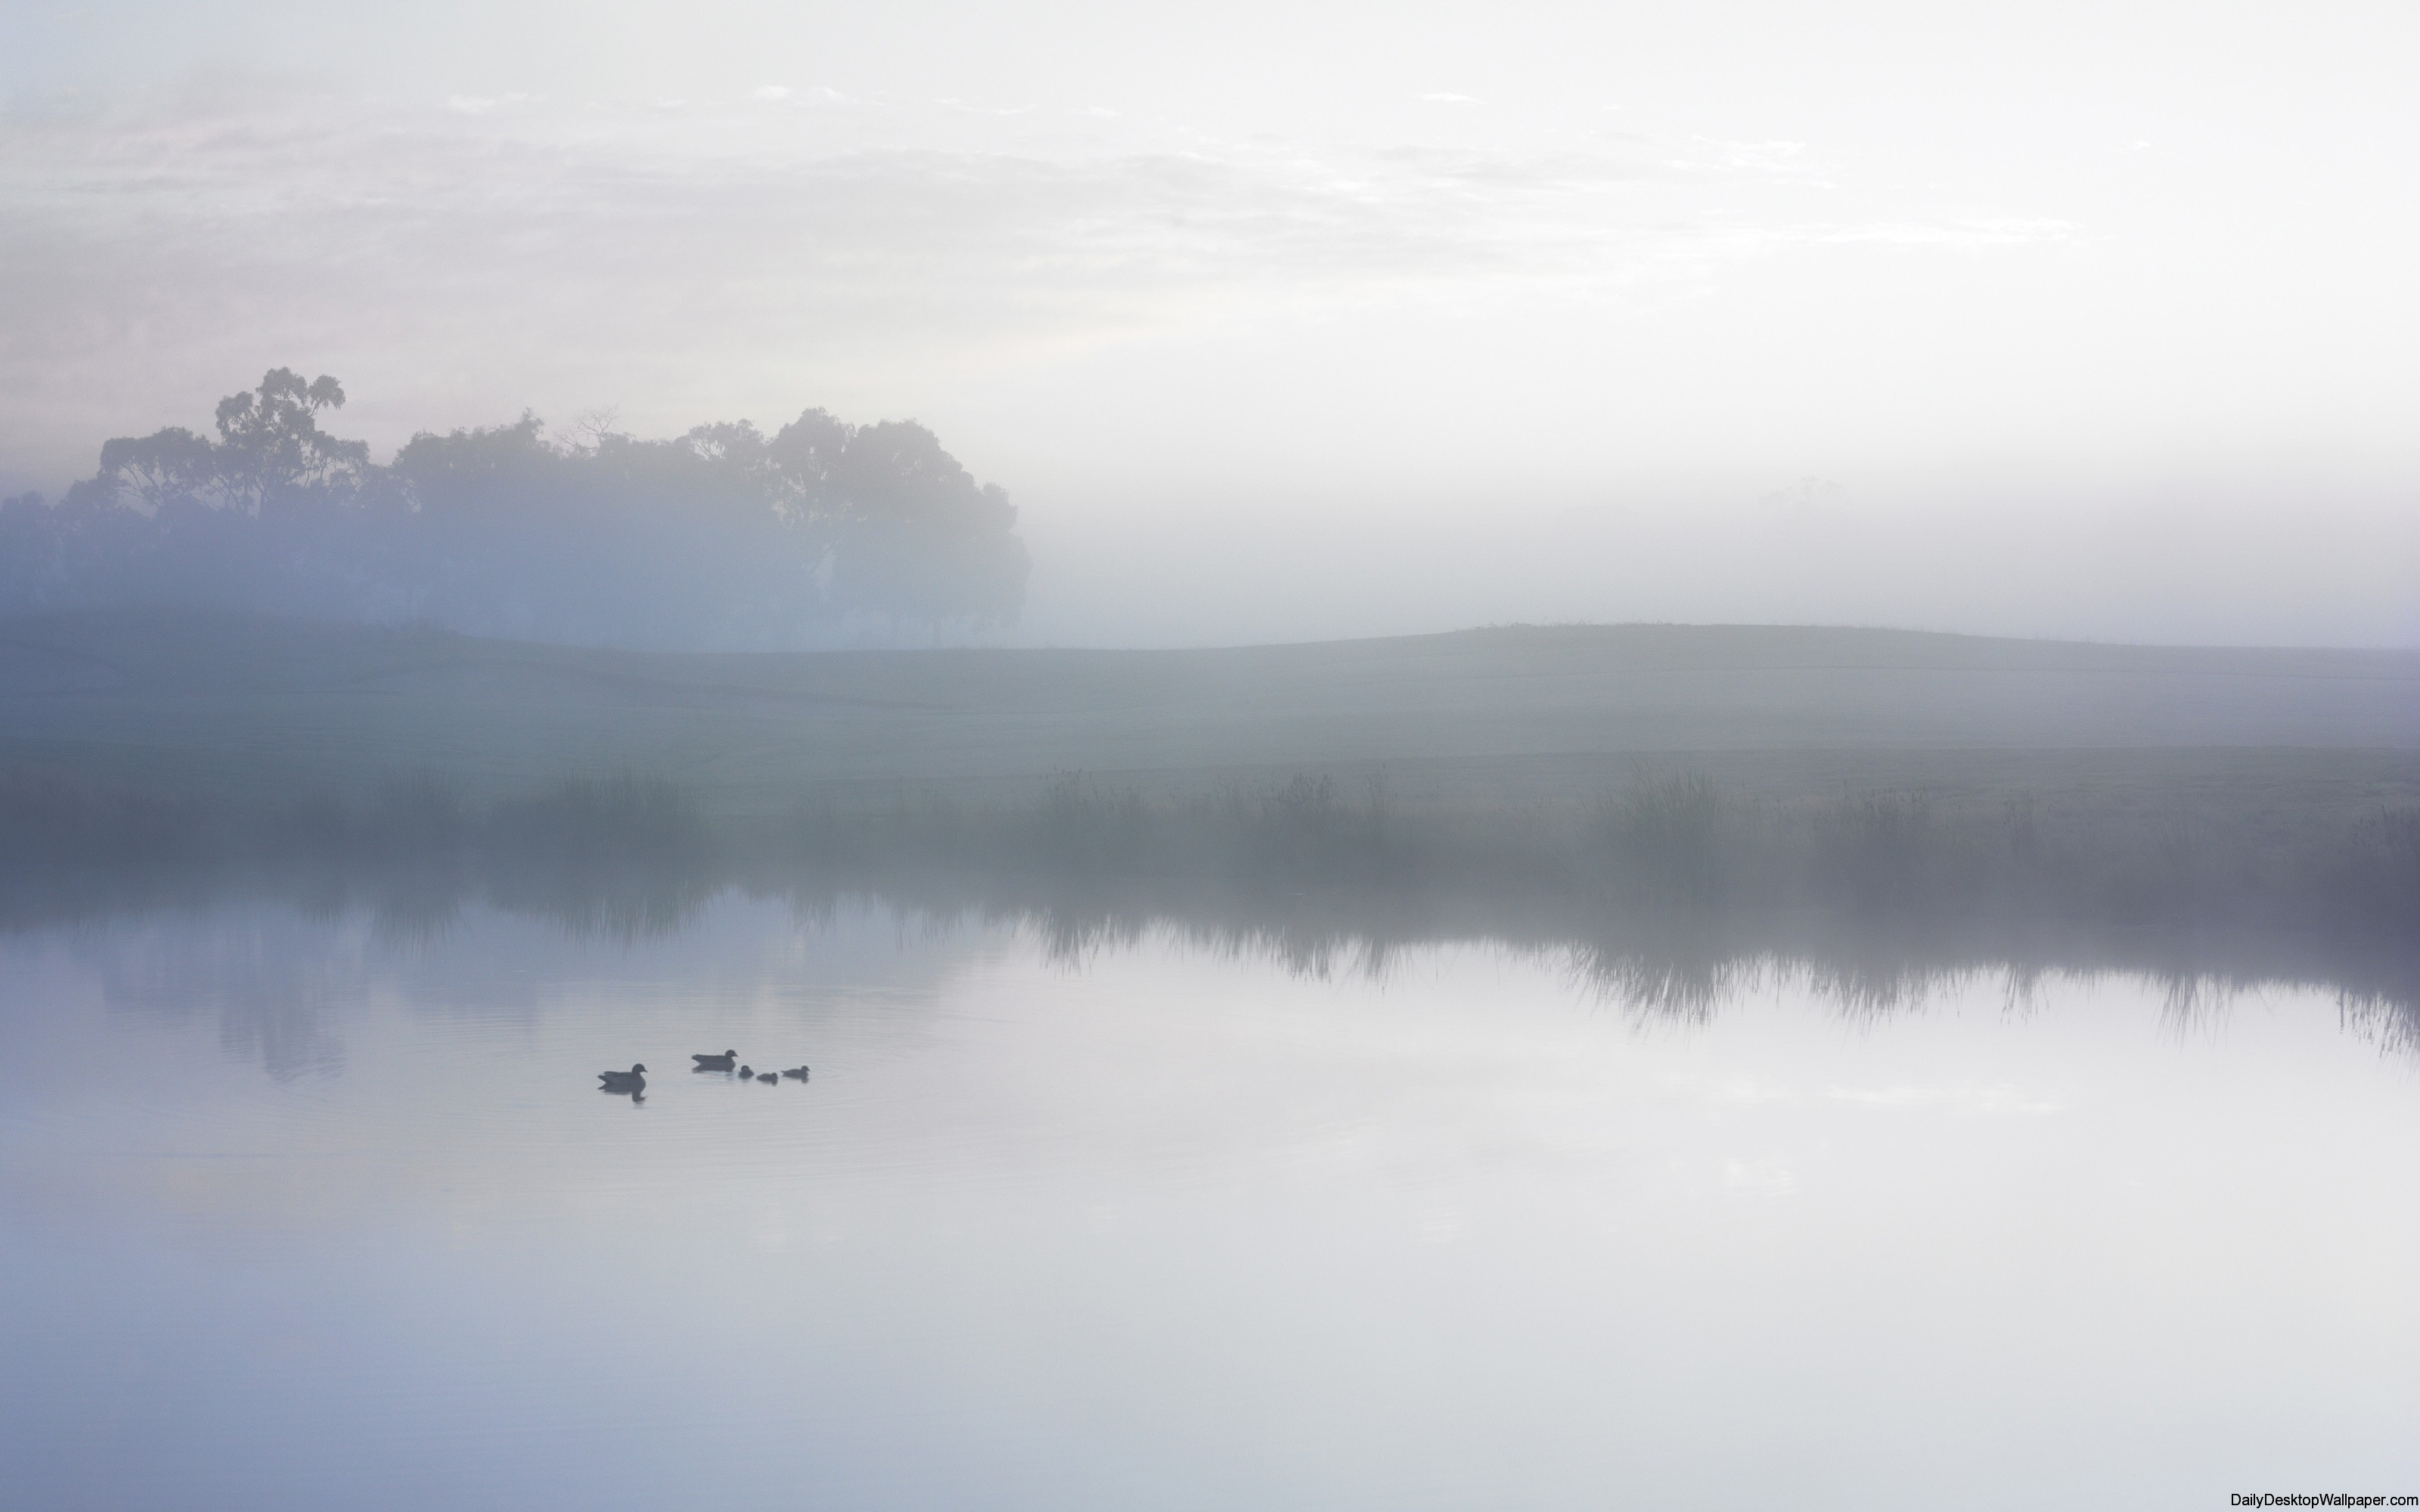 Ducks on a misty pond wallpaper